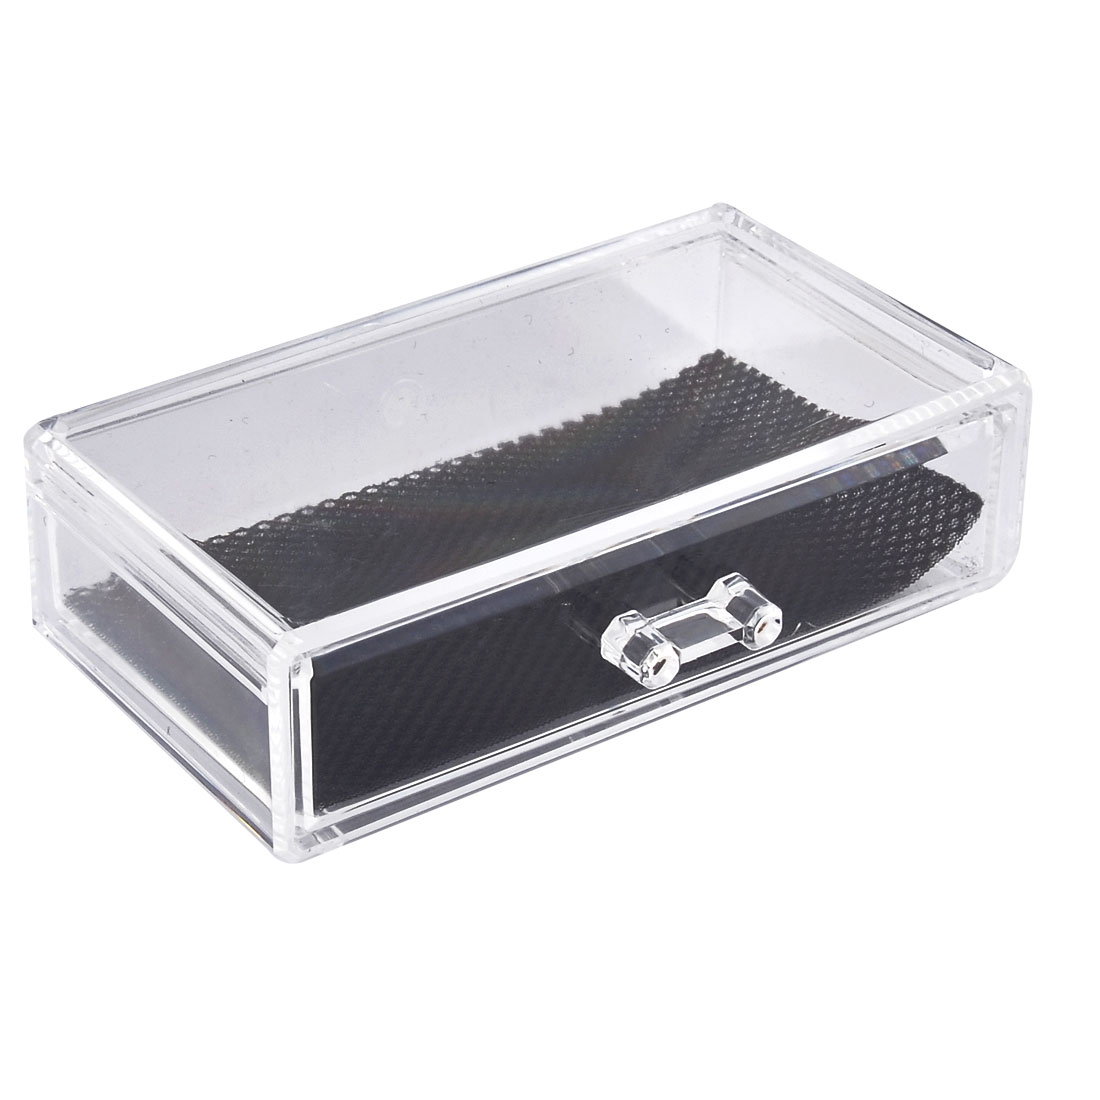 Household Acrylic Rectangle Shaped Jewelry Makeup Box Organizer Drawers